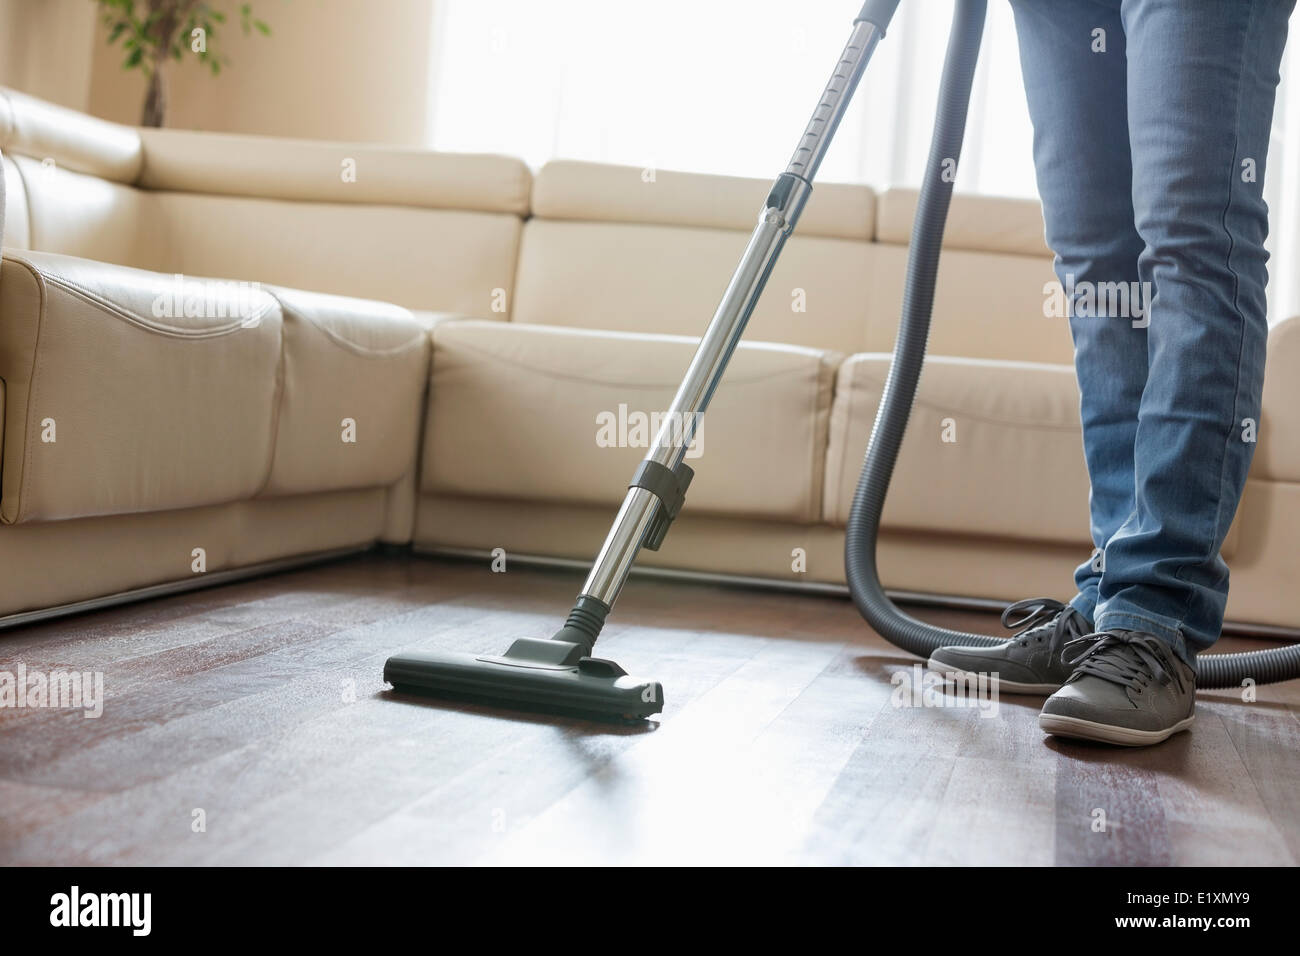 Low section of man cleaning hardwood floor with vacuum cleaner - Stock Image